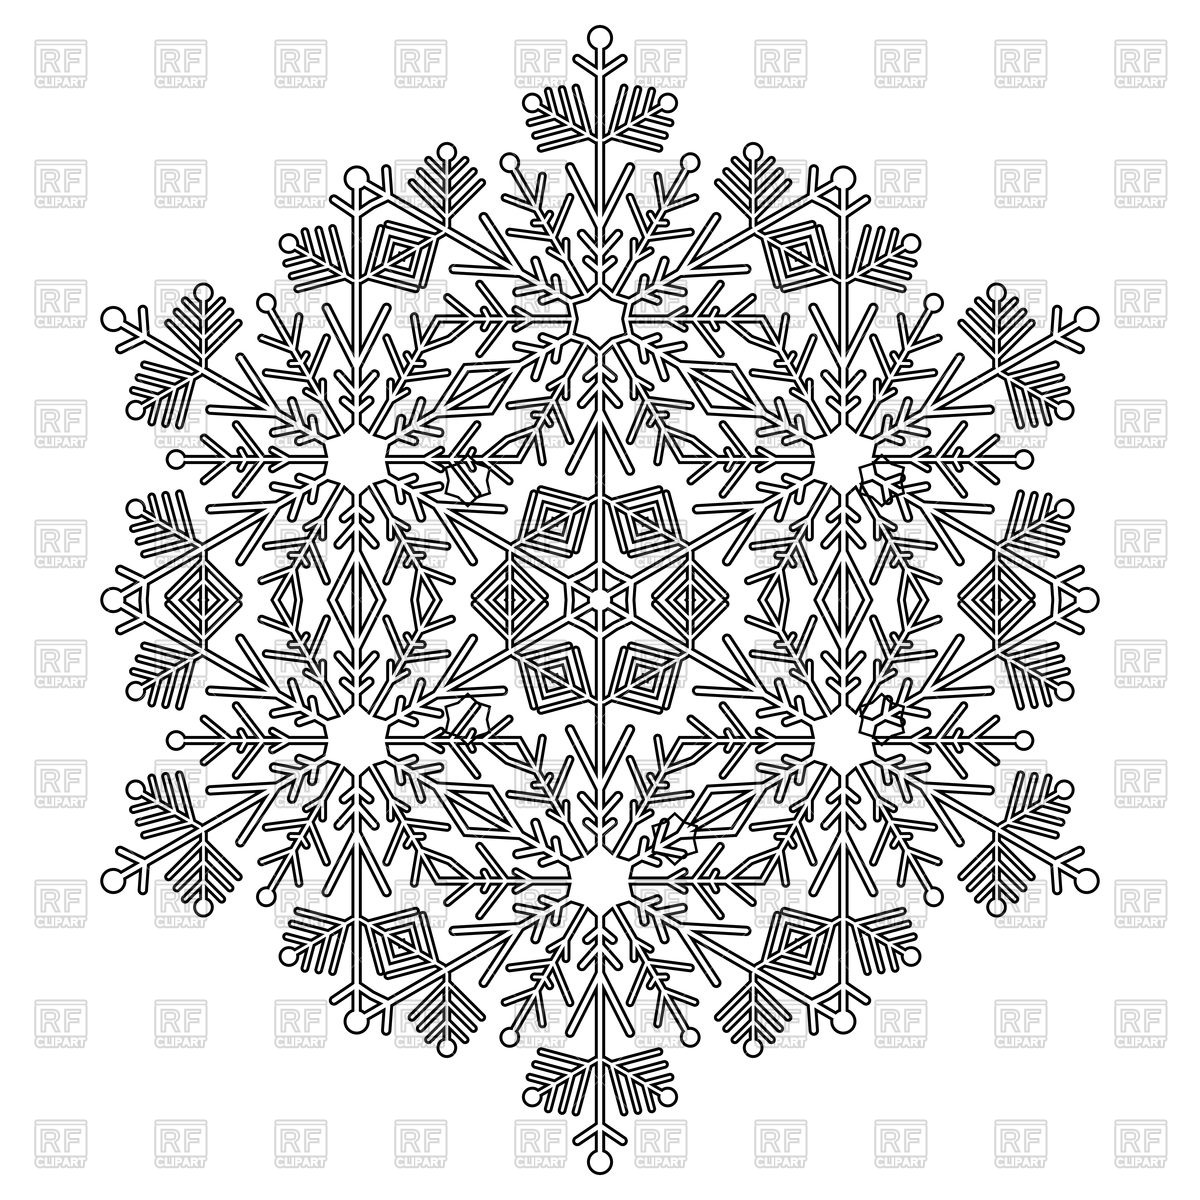 1200x1200 Round Black And White Snowflake Vector Image Vector Artwork Of